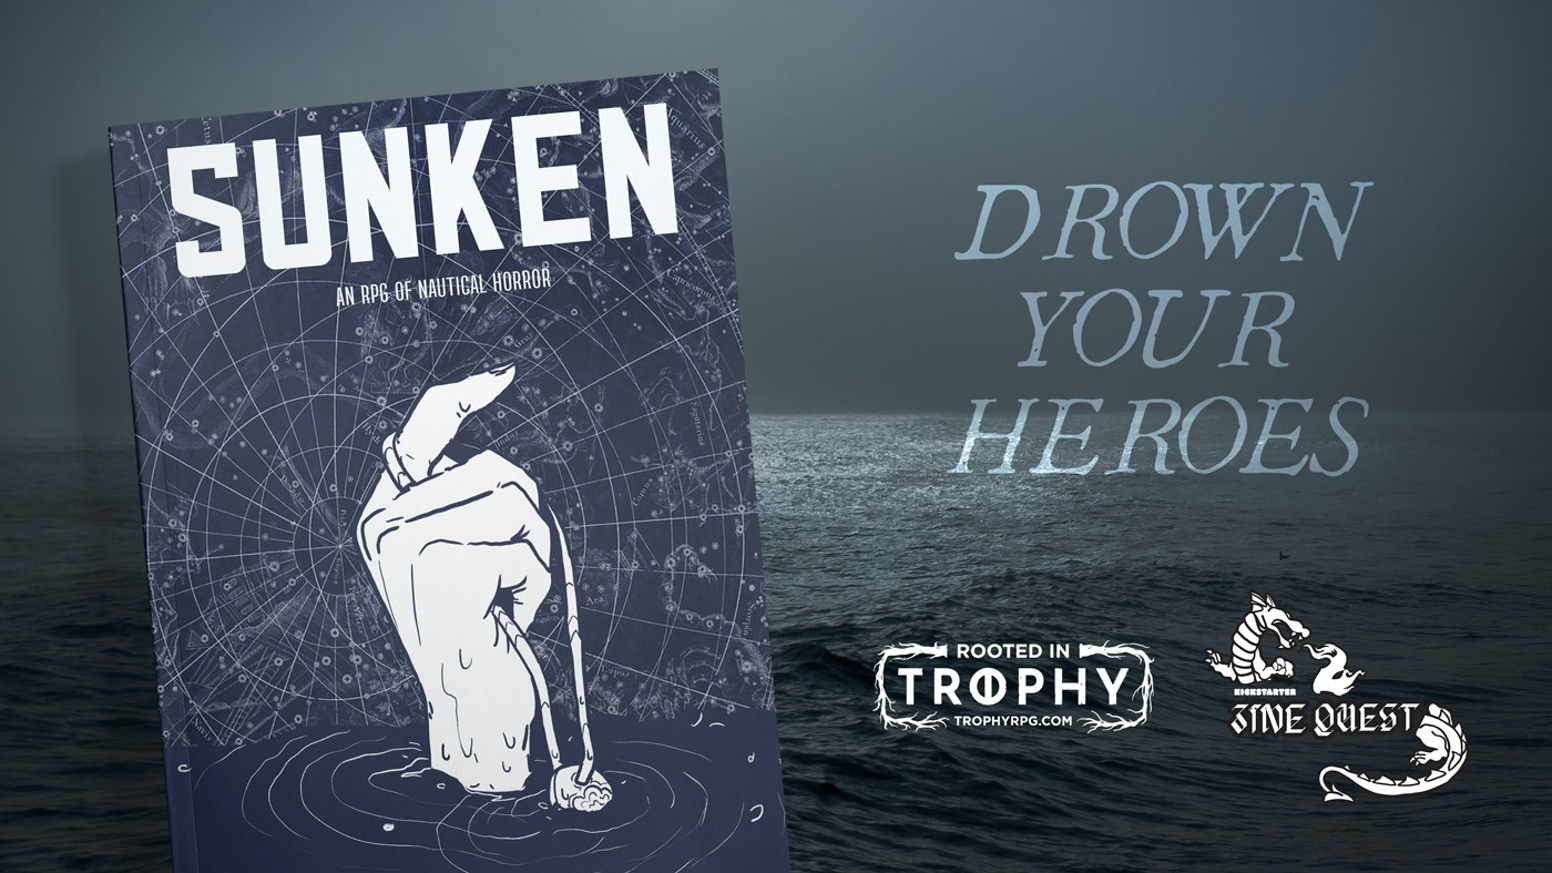 An RPG of nautical horror, rooted in Trophy.